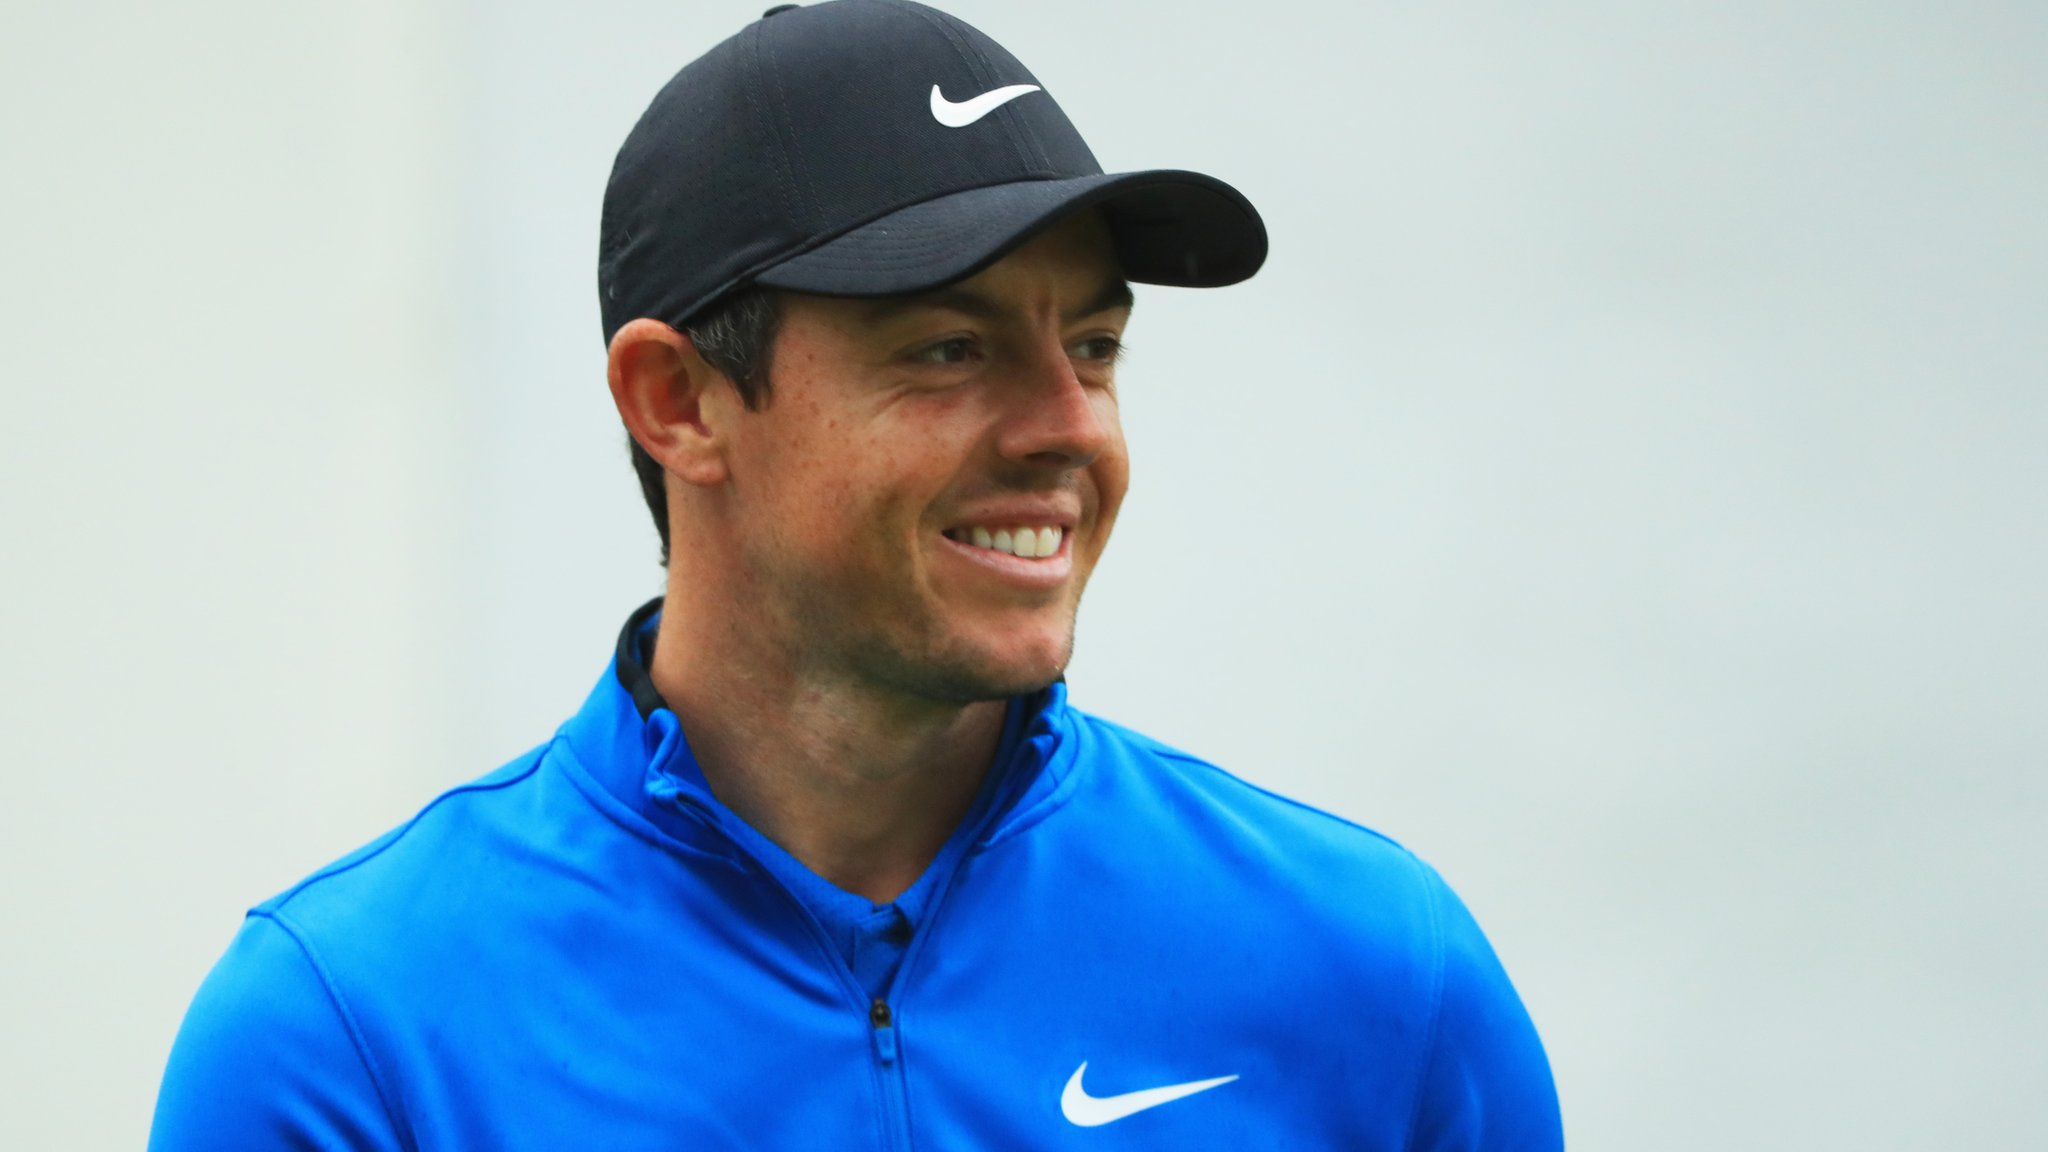 BMW PGA Championship: Rory McIlroy two shots off clubhouse lead at Wentworth